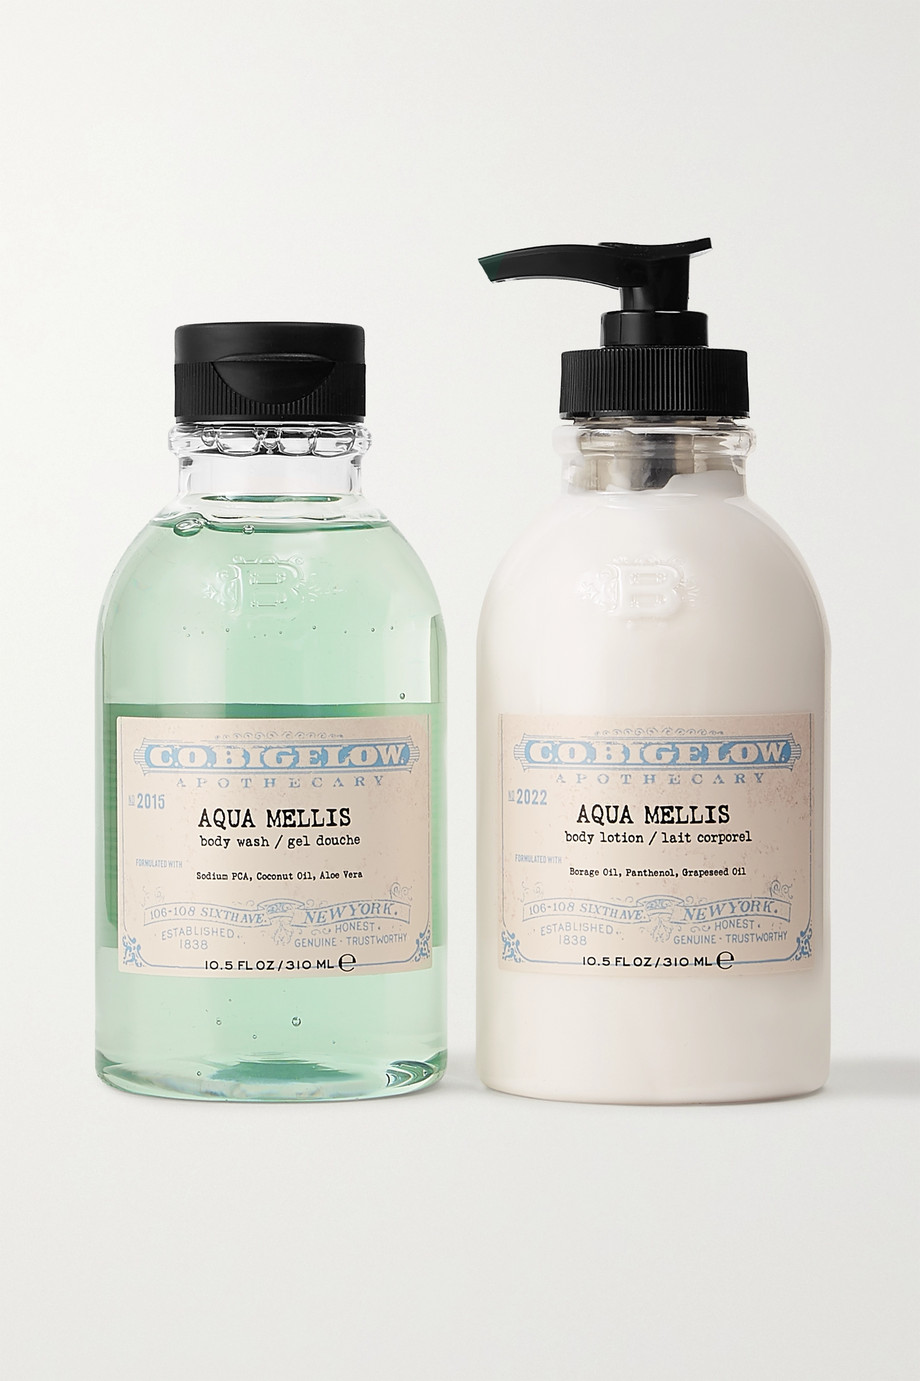 C.O. BIGELOW Iconic Collection Body Wash and Lotion Set - Aqua Mellis